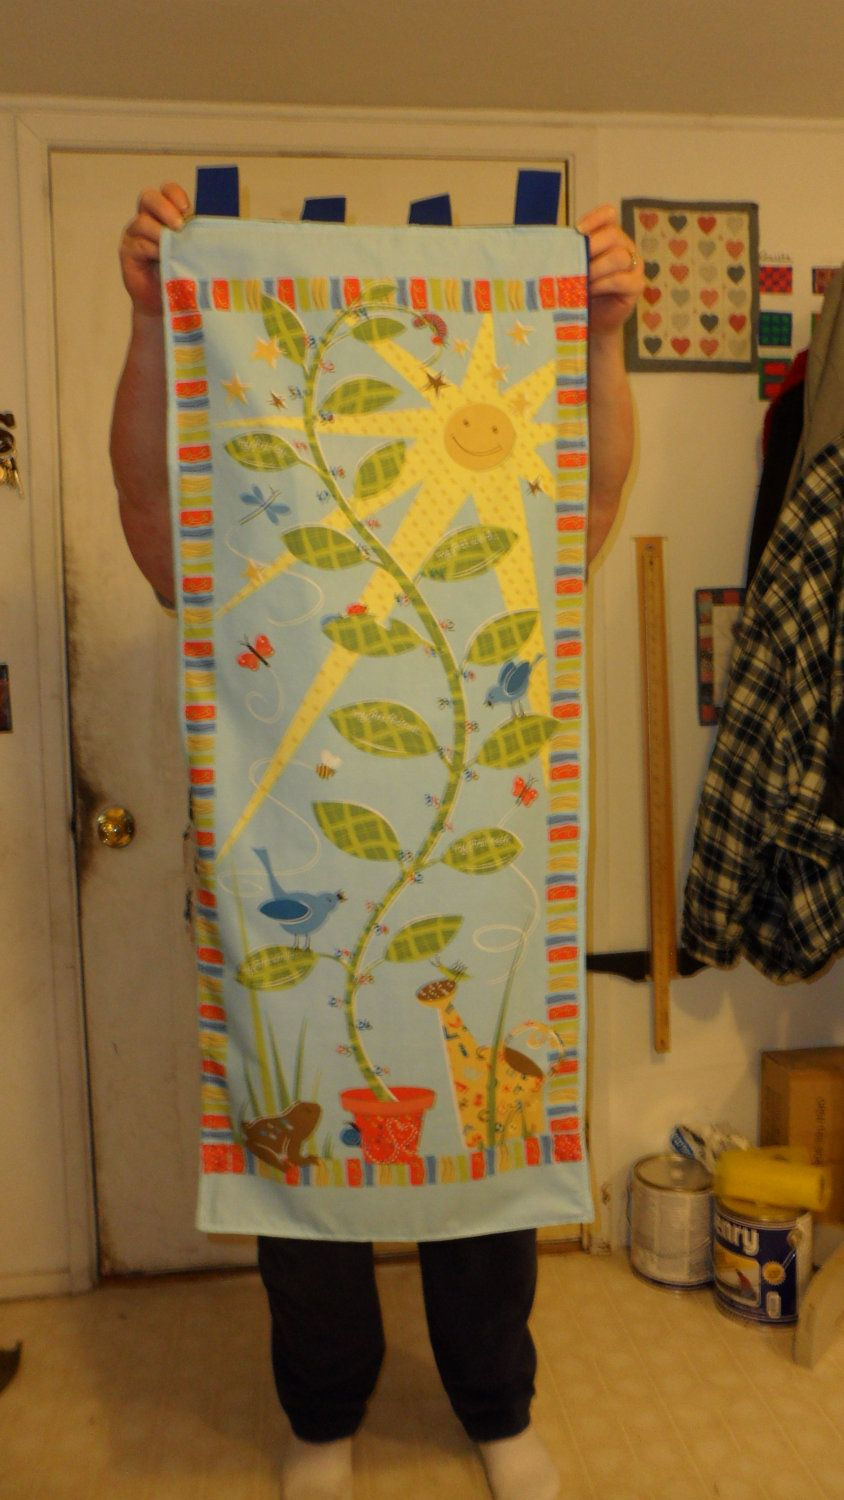 Childs growth chart wall hanging 700 via etsy maybe baby childs growth chart wall hanging nvjuhfo Images